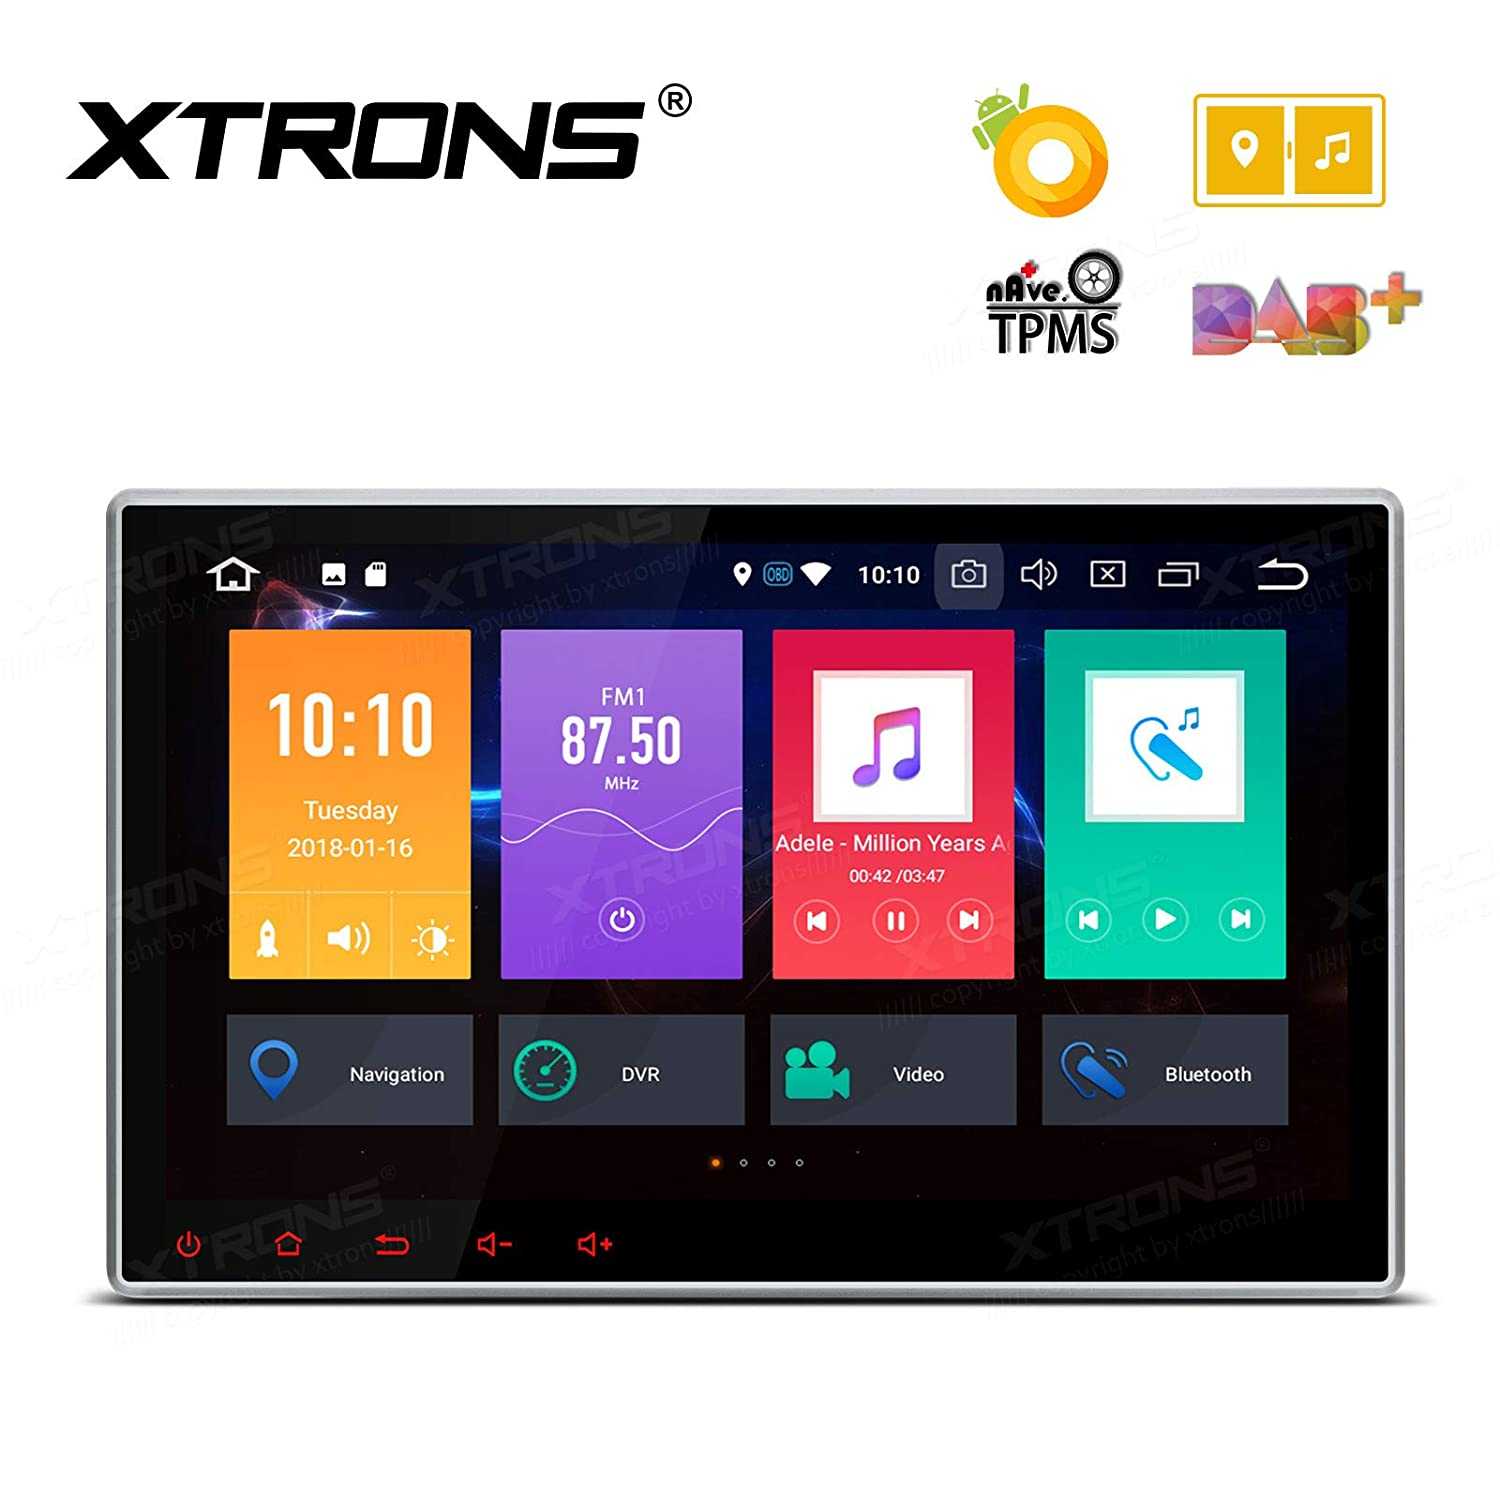 Best Android Auto Head Unit 2020.Xtrons 10 1 Inch Android 8 0 Octa Core 4g Ram 32g Rom Hd Digital Multi Touch Screen Car Stereo Gps Radio Dvd Player Adjustable Viewing Angles Obd2